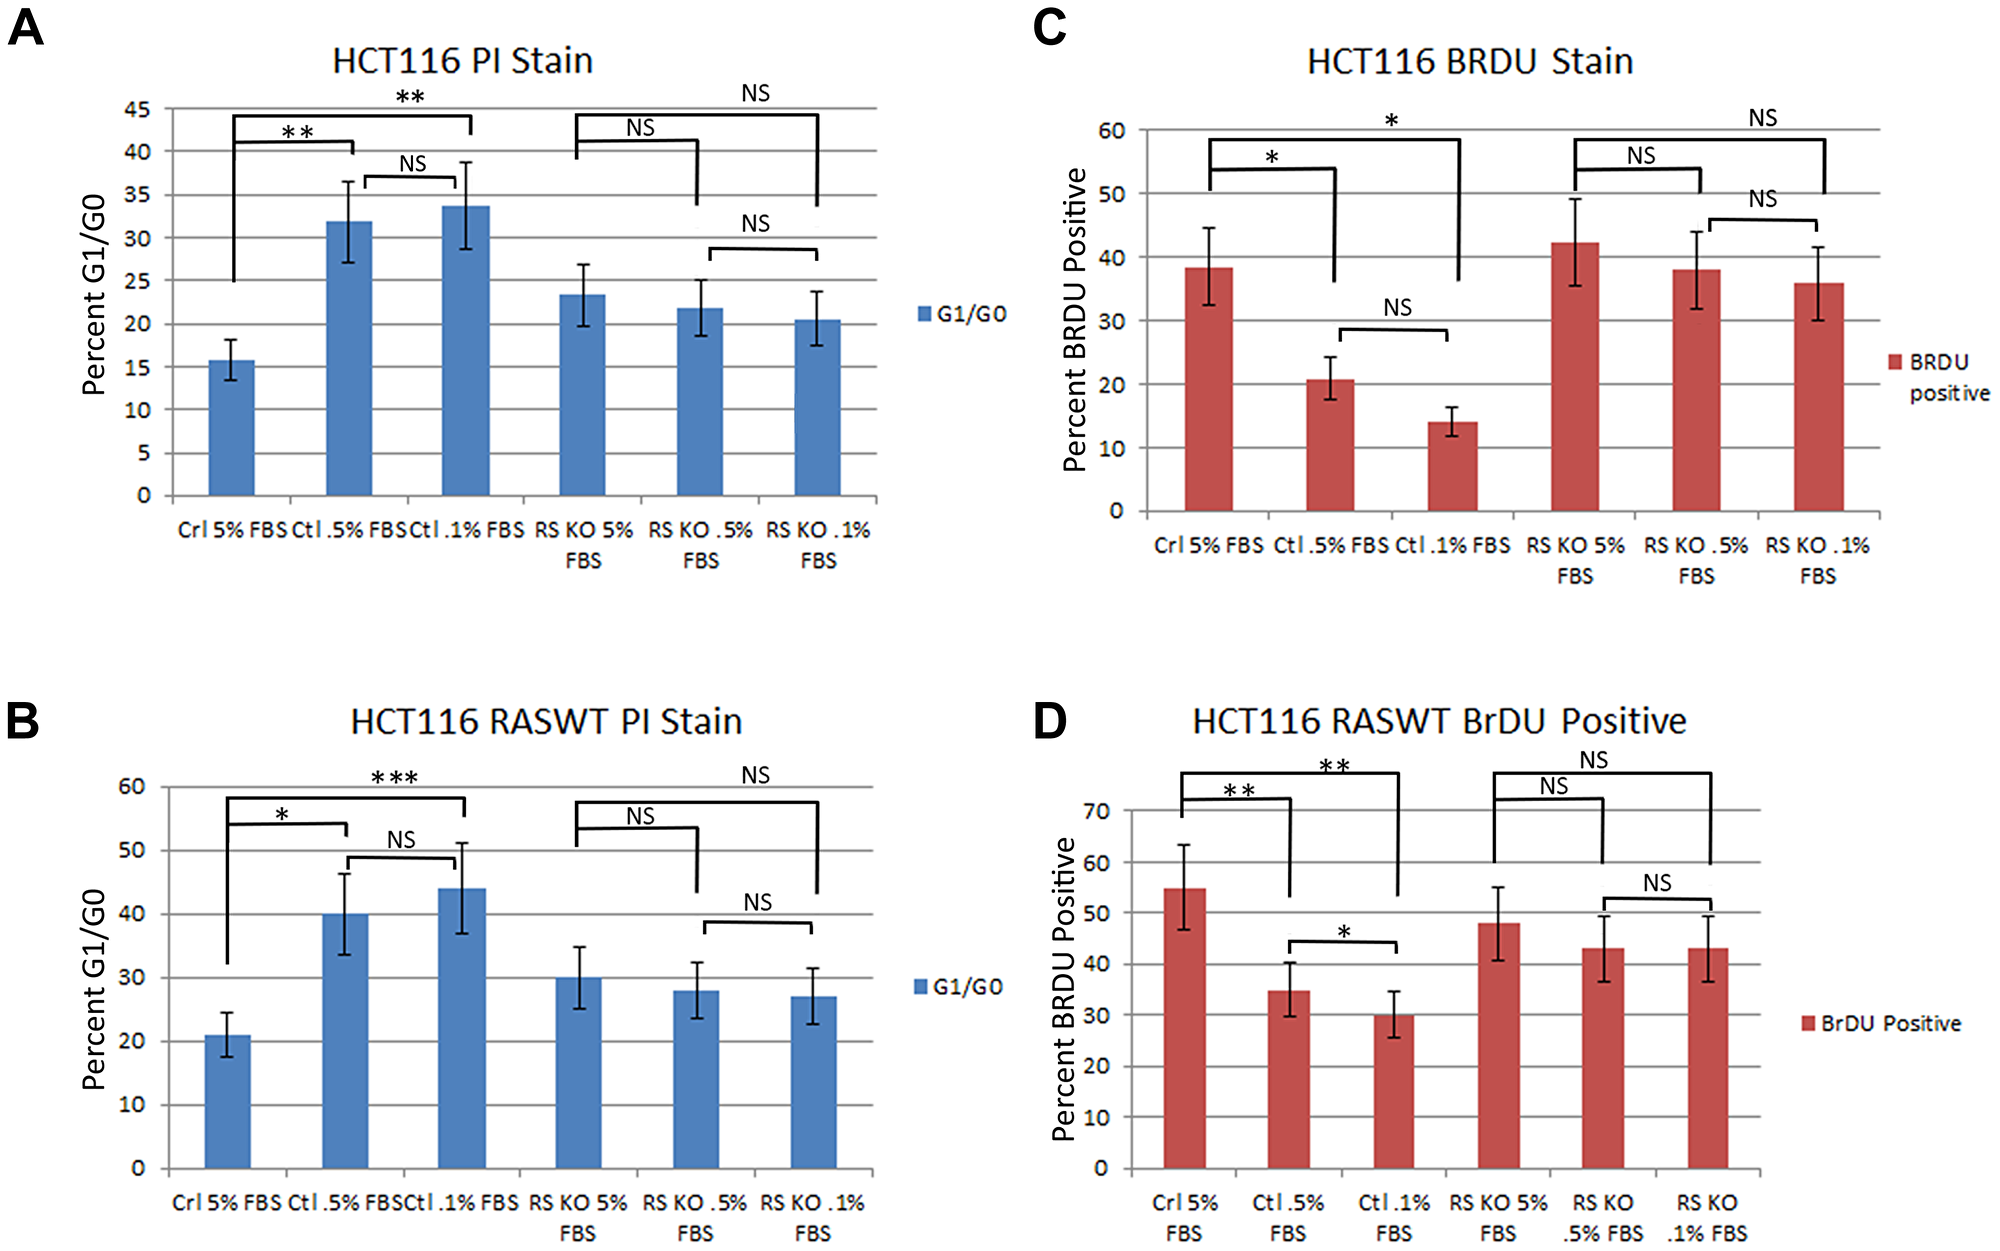 Knockout of PTPRS in KRAS mutant and KRAS WT cells increased growth potential.